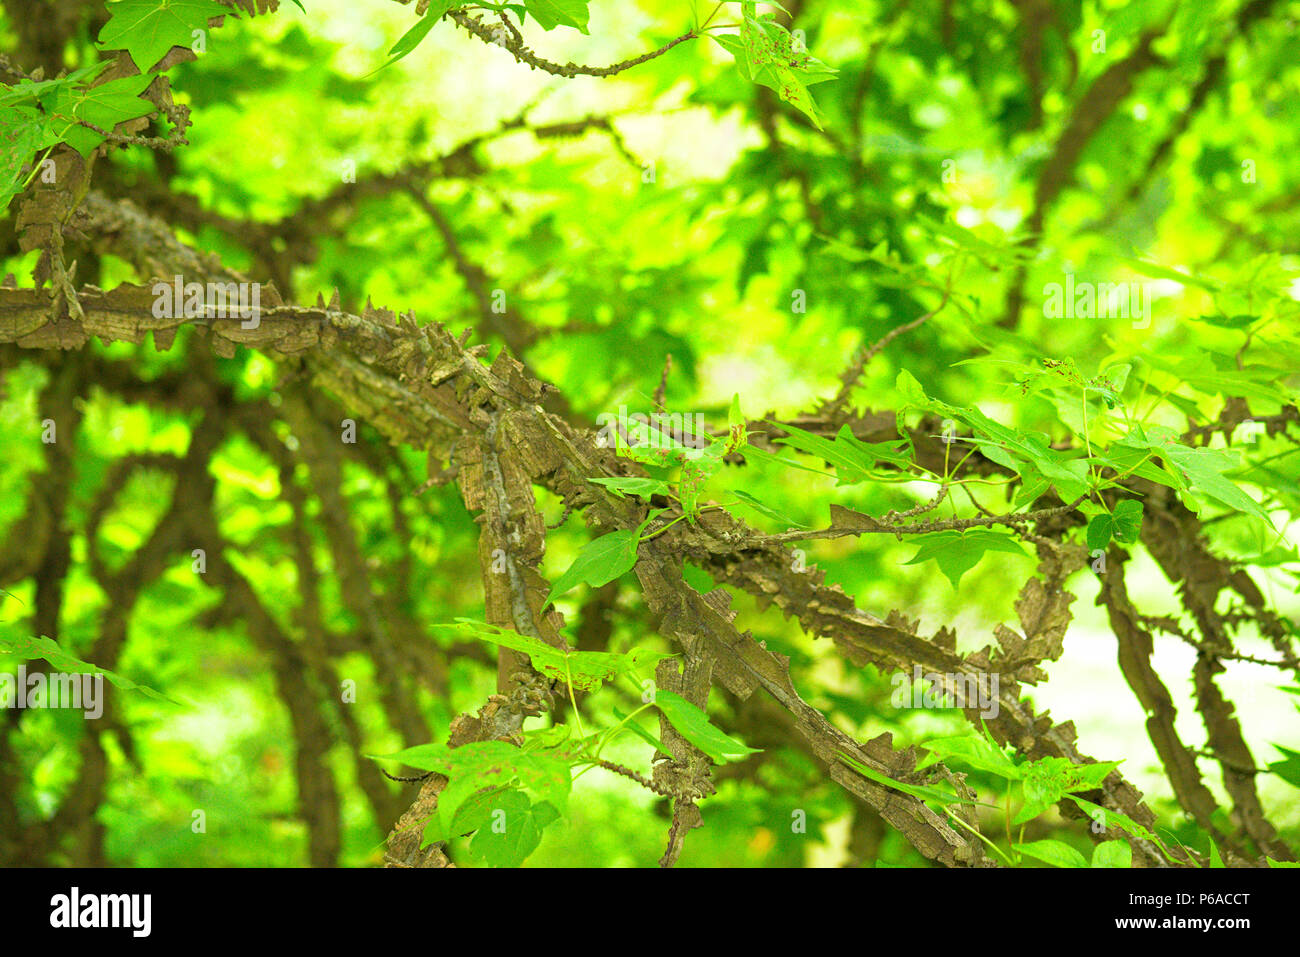 Corky Sweet Gum tree branch with green leaves - Stock Image